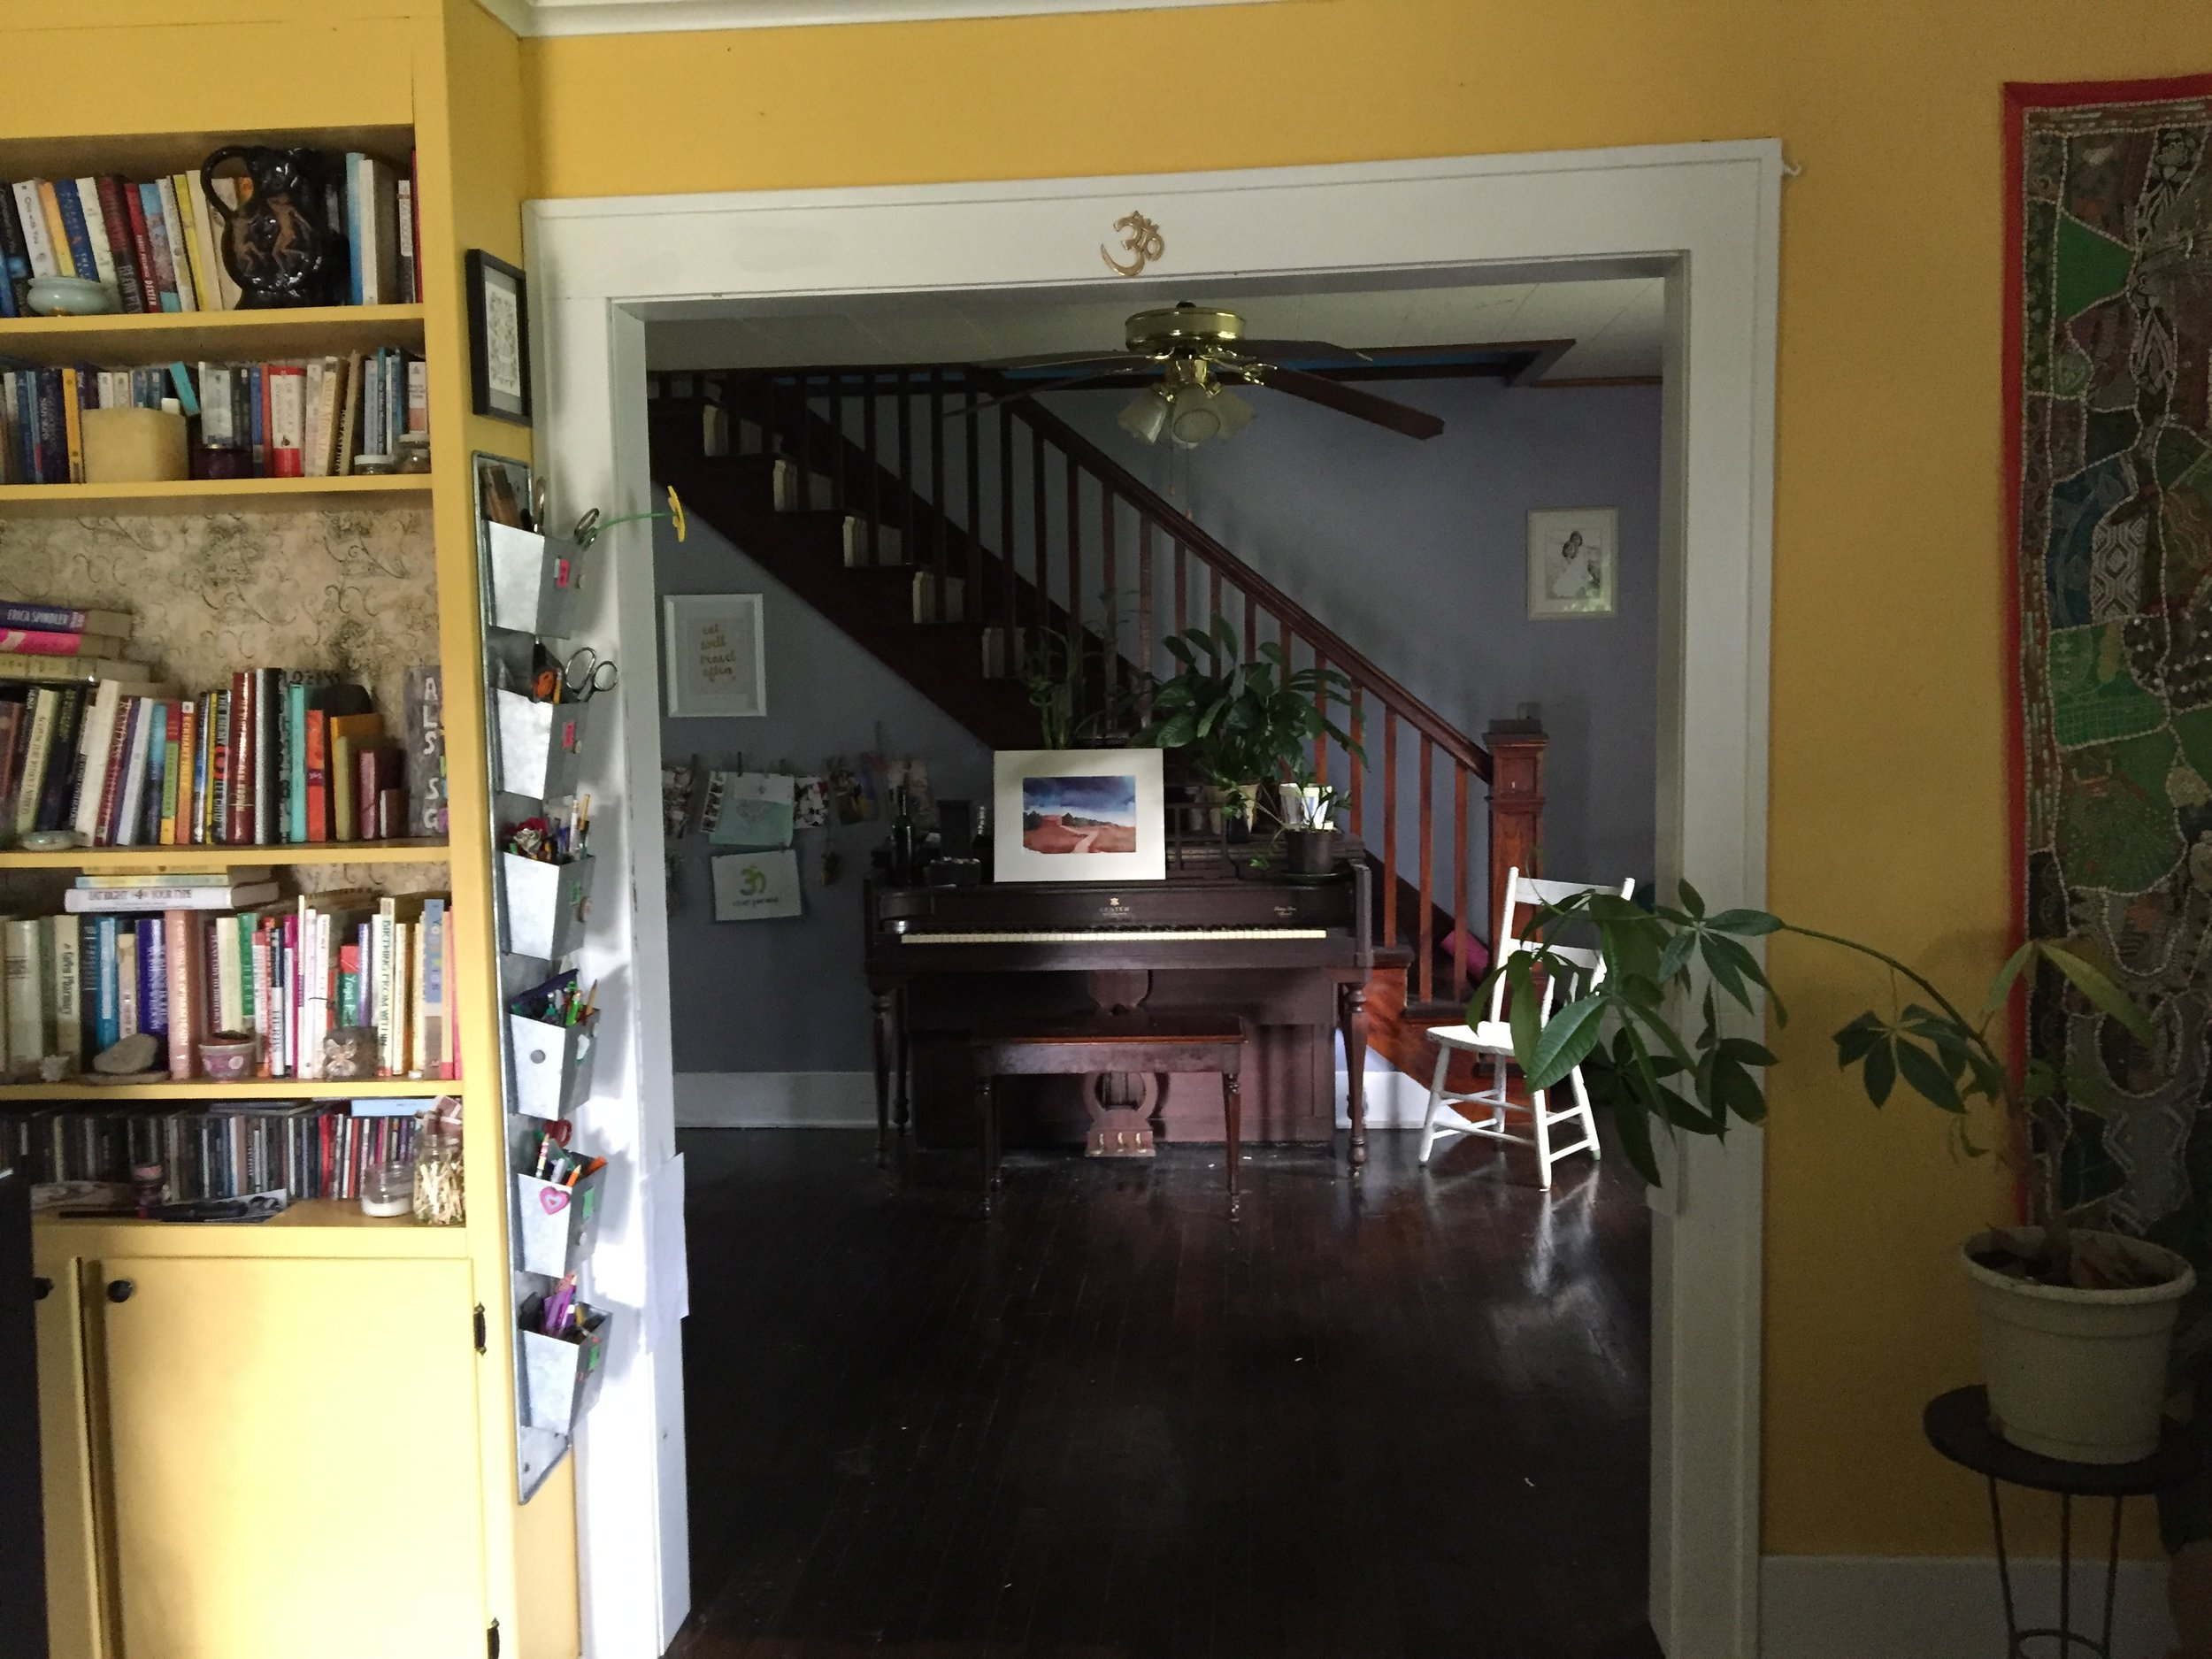 This is the view you see when you first walk into Brooke's home.  You're in the living room, which opens up to the dining room, with a totally inviting view of her piano. To the left is a sunny built in bookshelf.